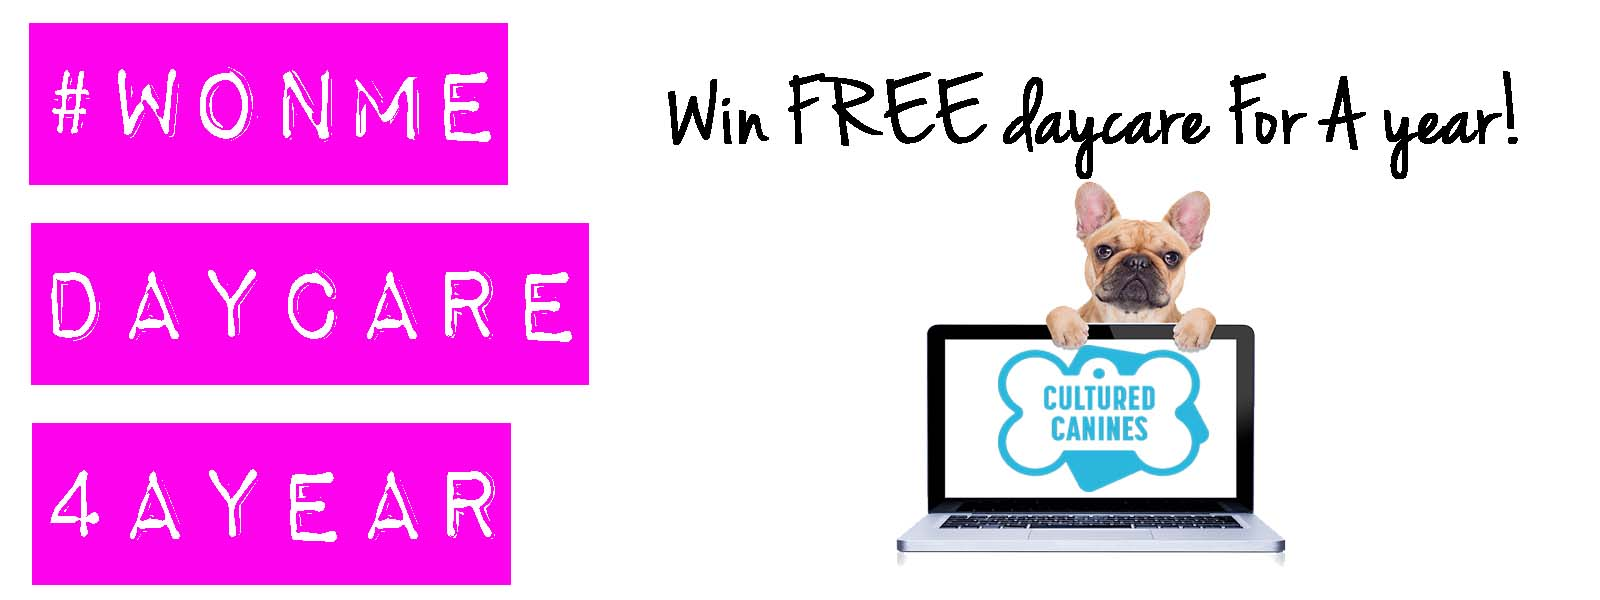 Visit the Cultured Canines Booth for your chance to win FREE Day Care for ONE YEAR! a $6,300.00 Value - Some restrictions apply. Please see exhibitor for details. Must attend Pet-A-Palooza to enter.